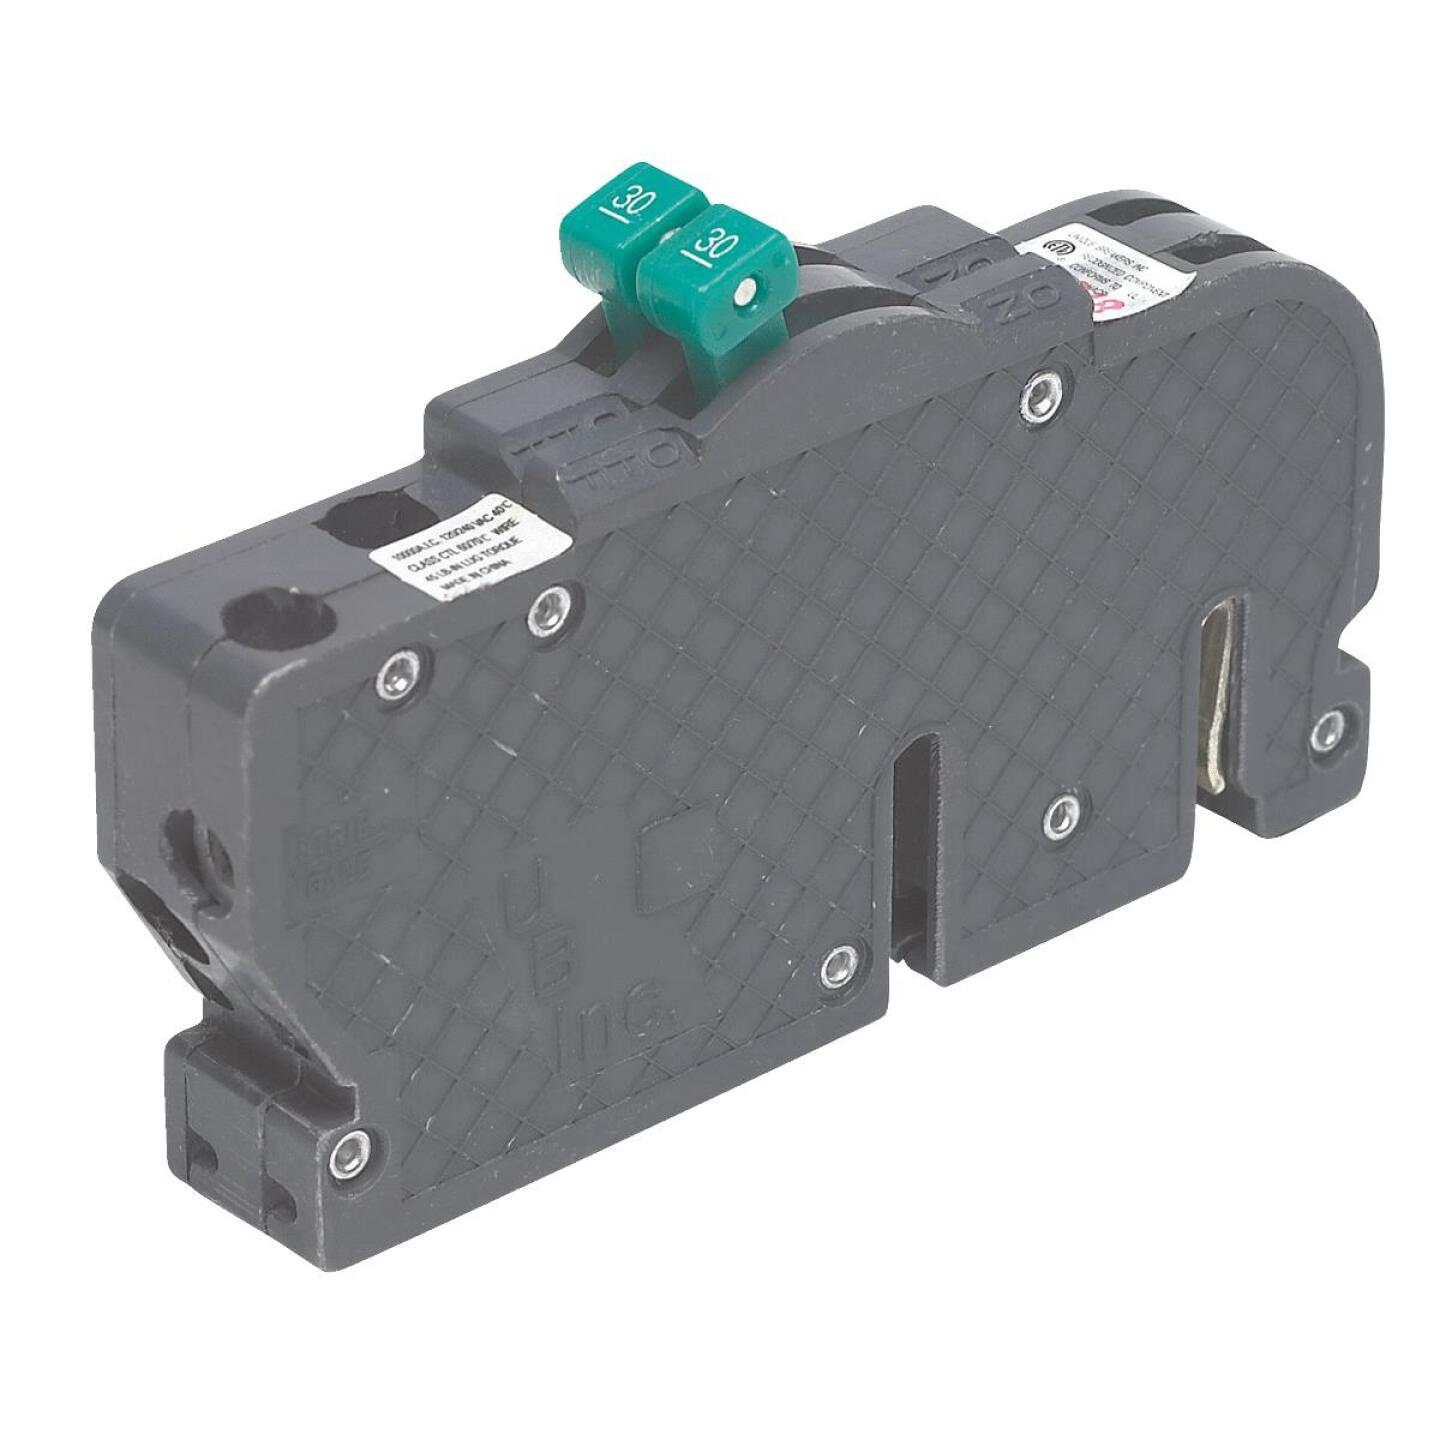 Connecticut Electric 30A/30A Twin Single-Pole Standard Trip Packaged Replacement Circuit Breaker For Zinsco Image 1